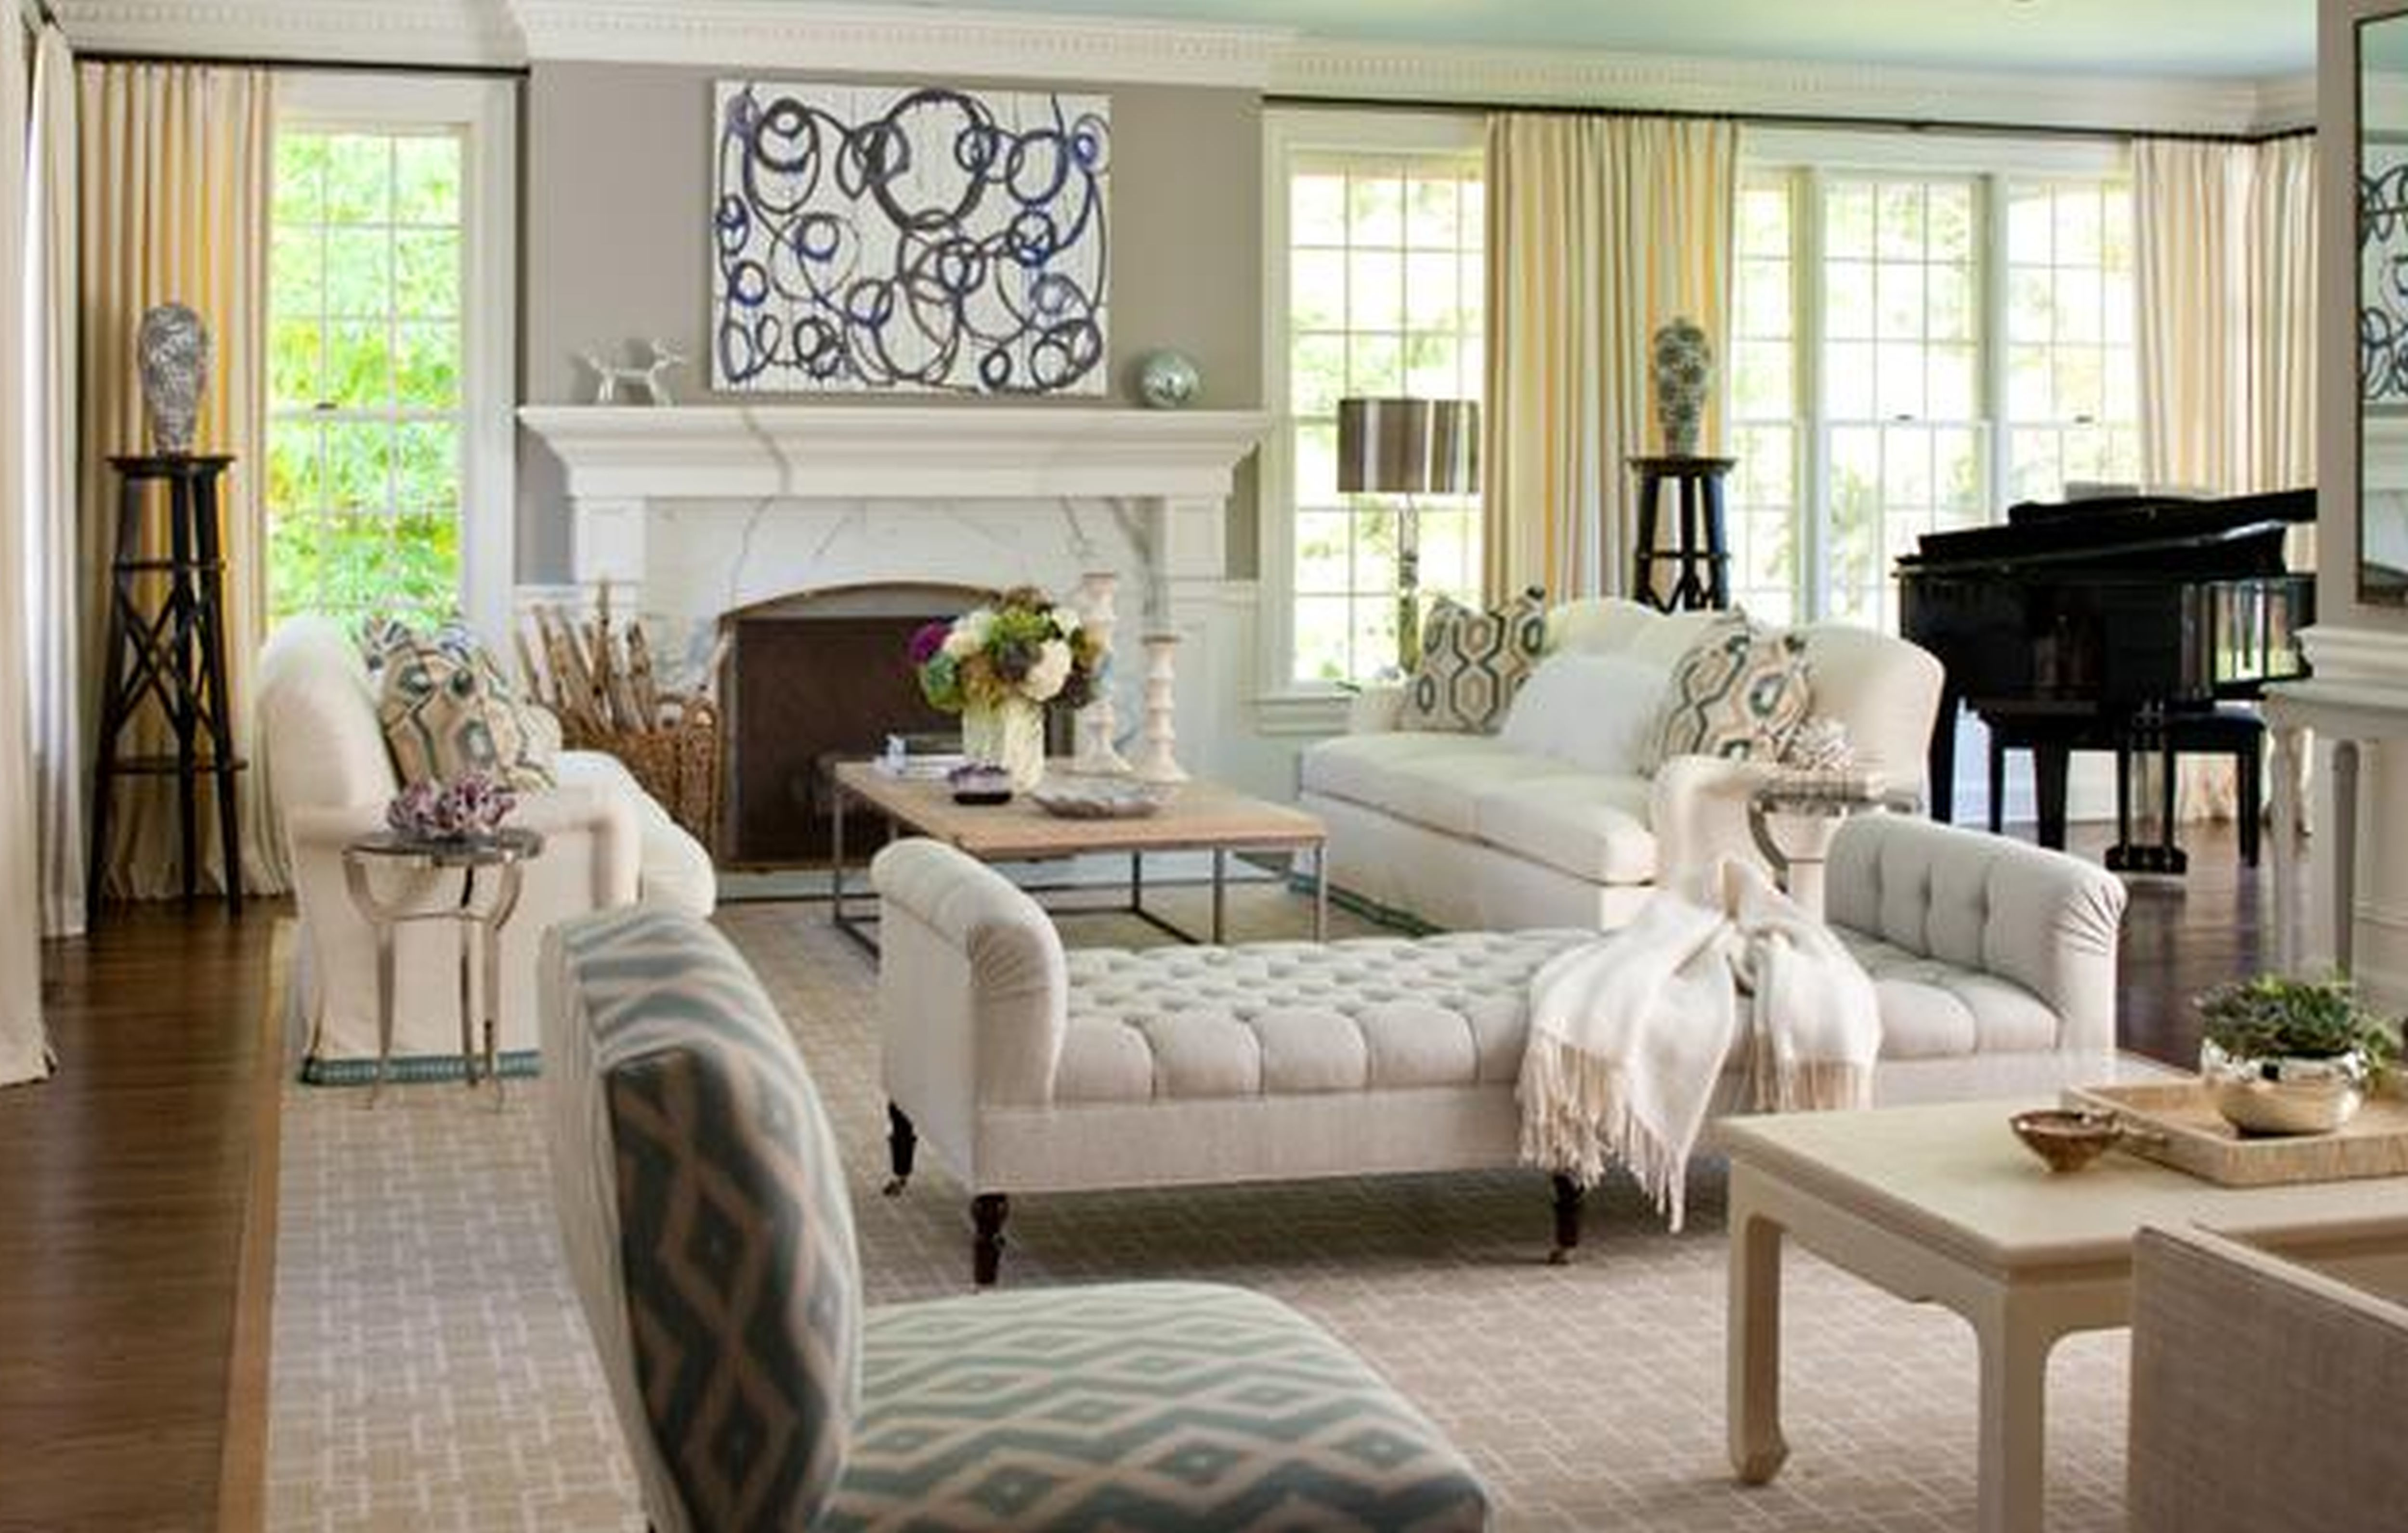 Exquisite White Living Room Furniture Ideas With White Fireplace Added  White Living Couch And Table Decors Amazing Pictures